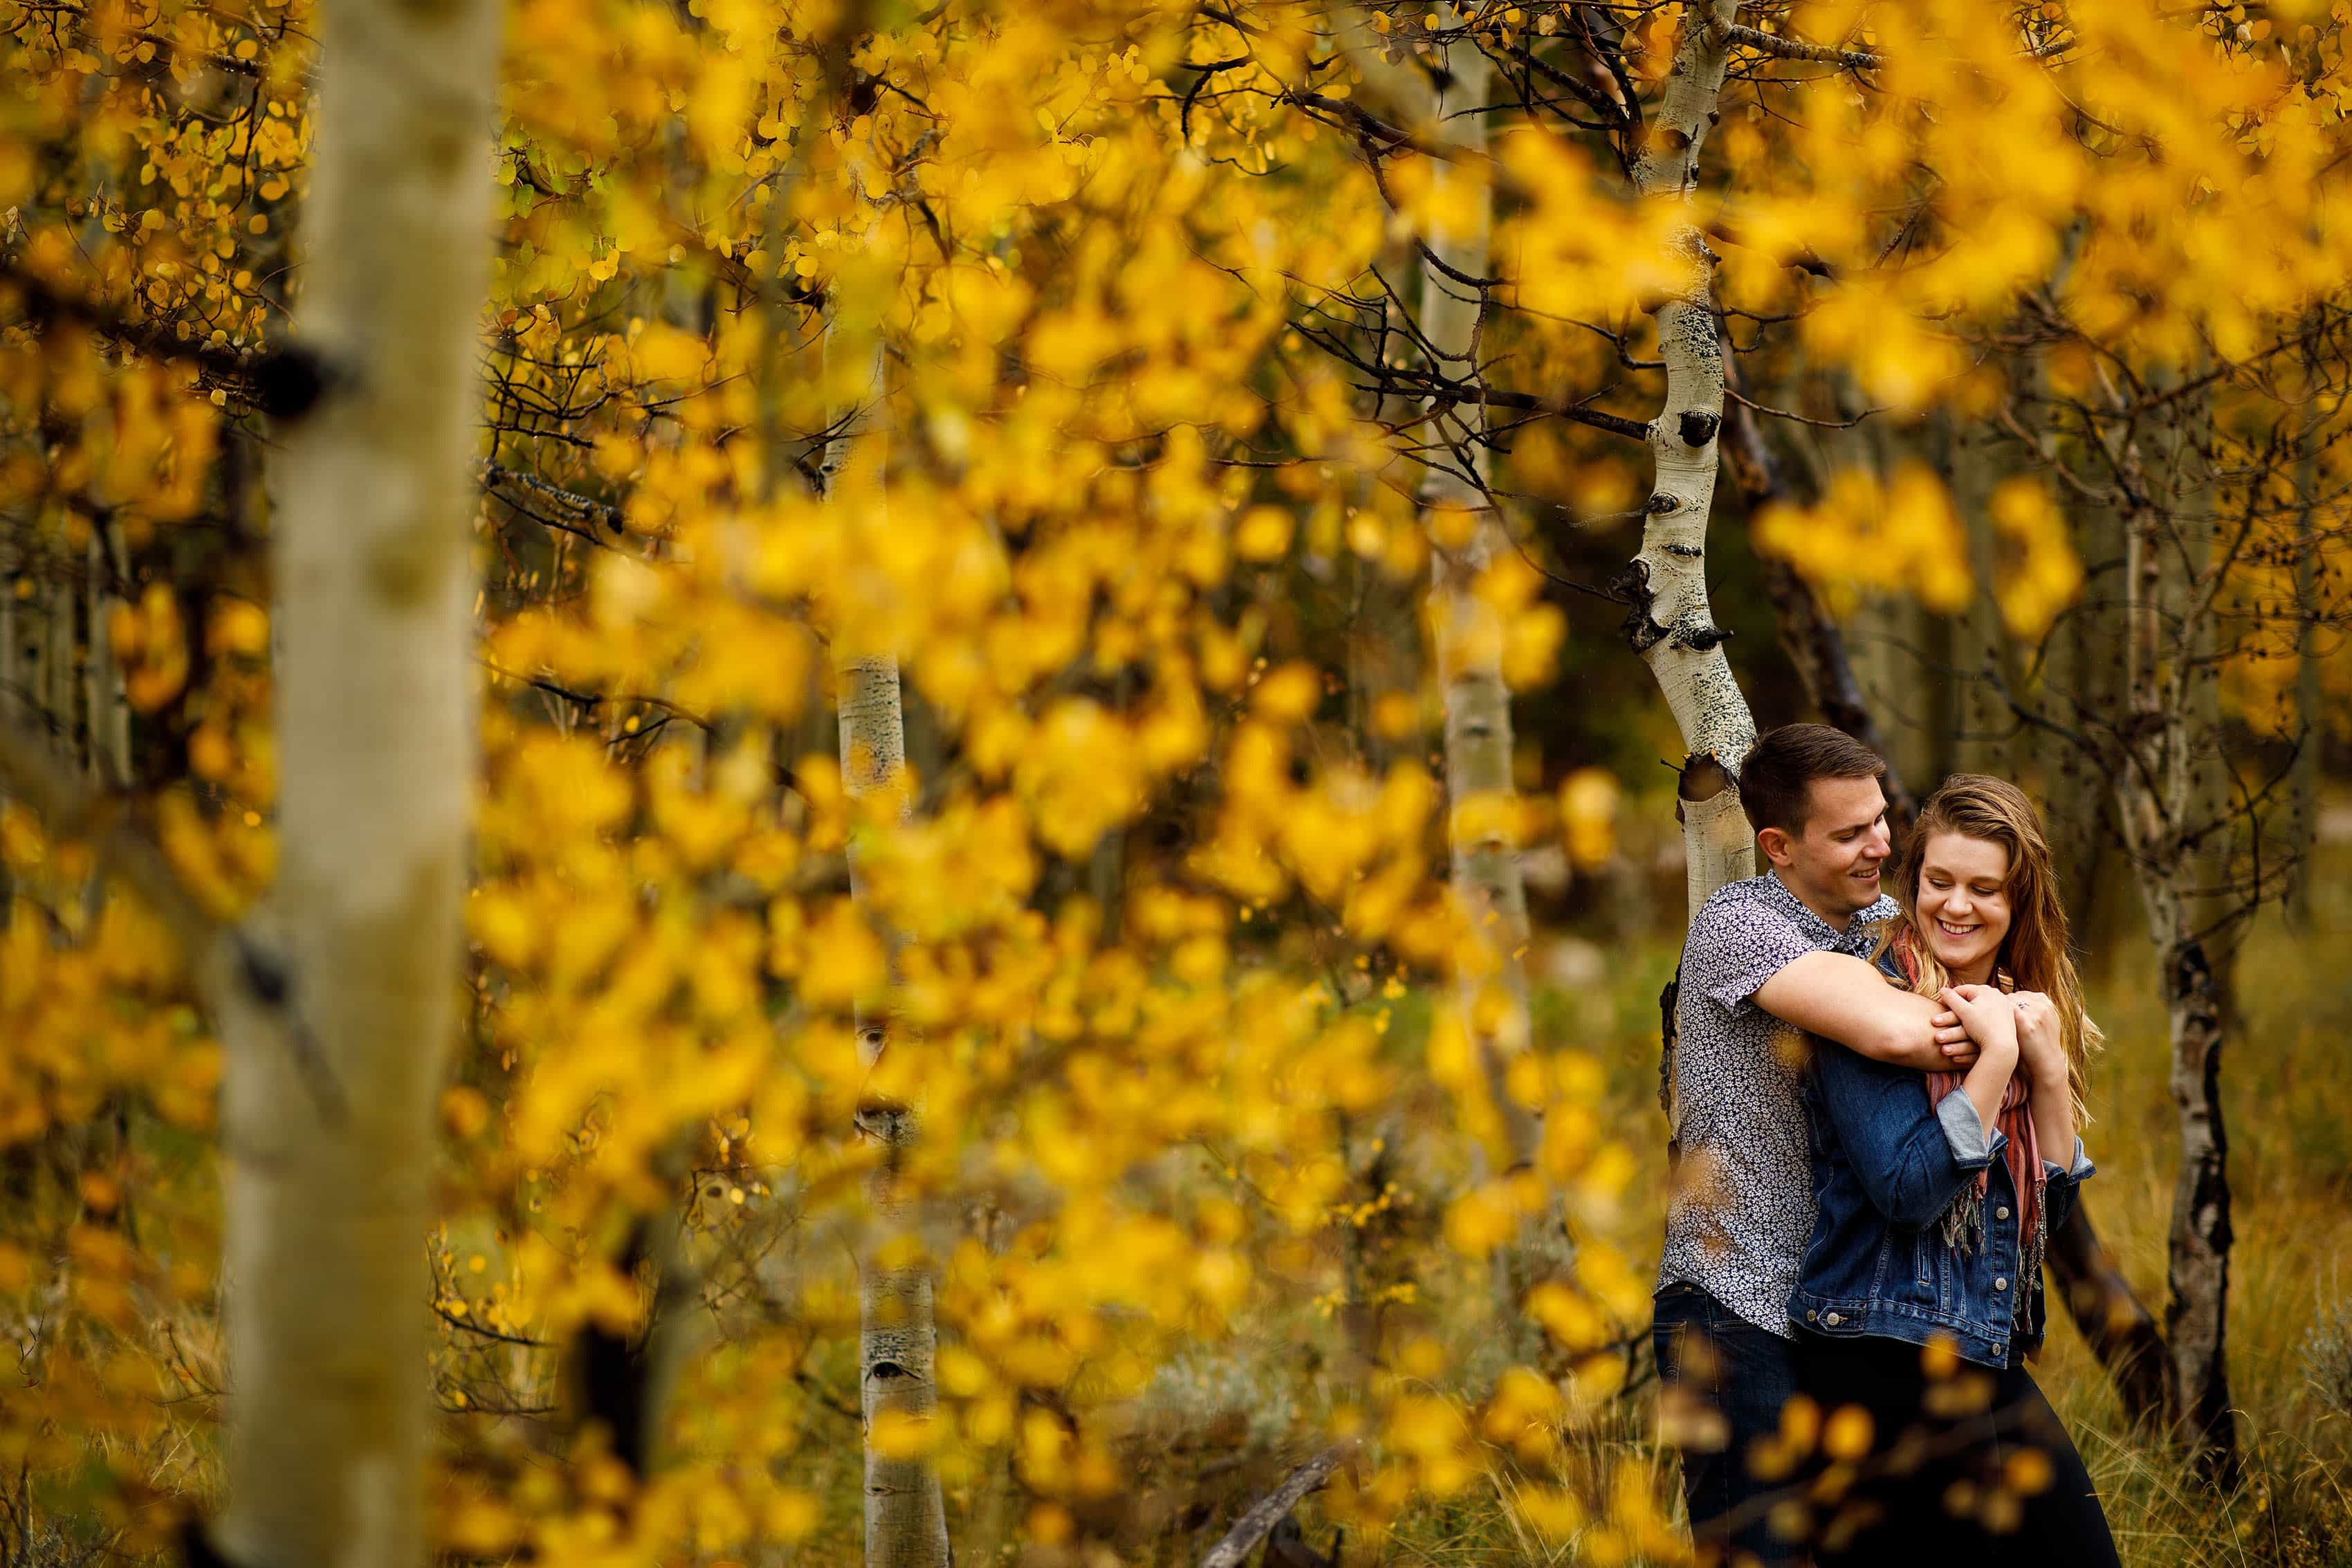 Hayden and Holly are surrounded by yellow aspen trees in Frisco Colorado during their engagement session